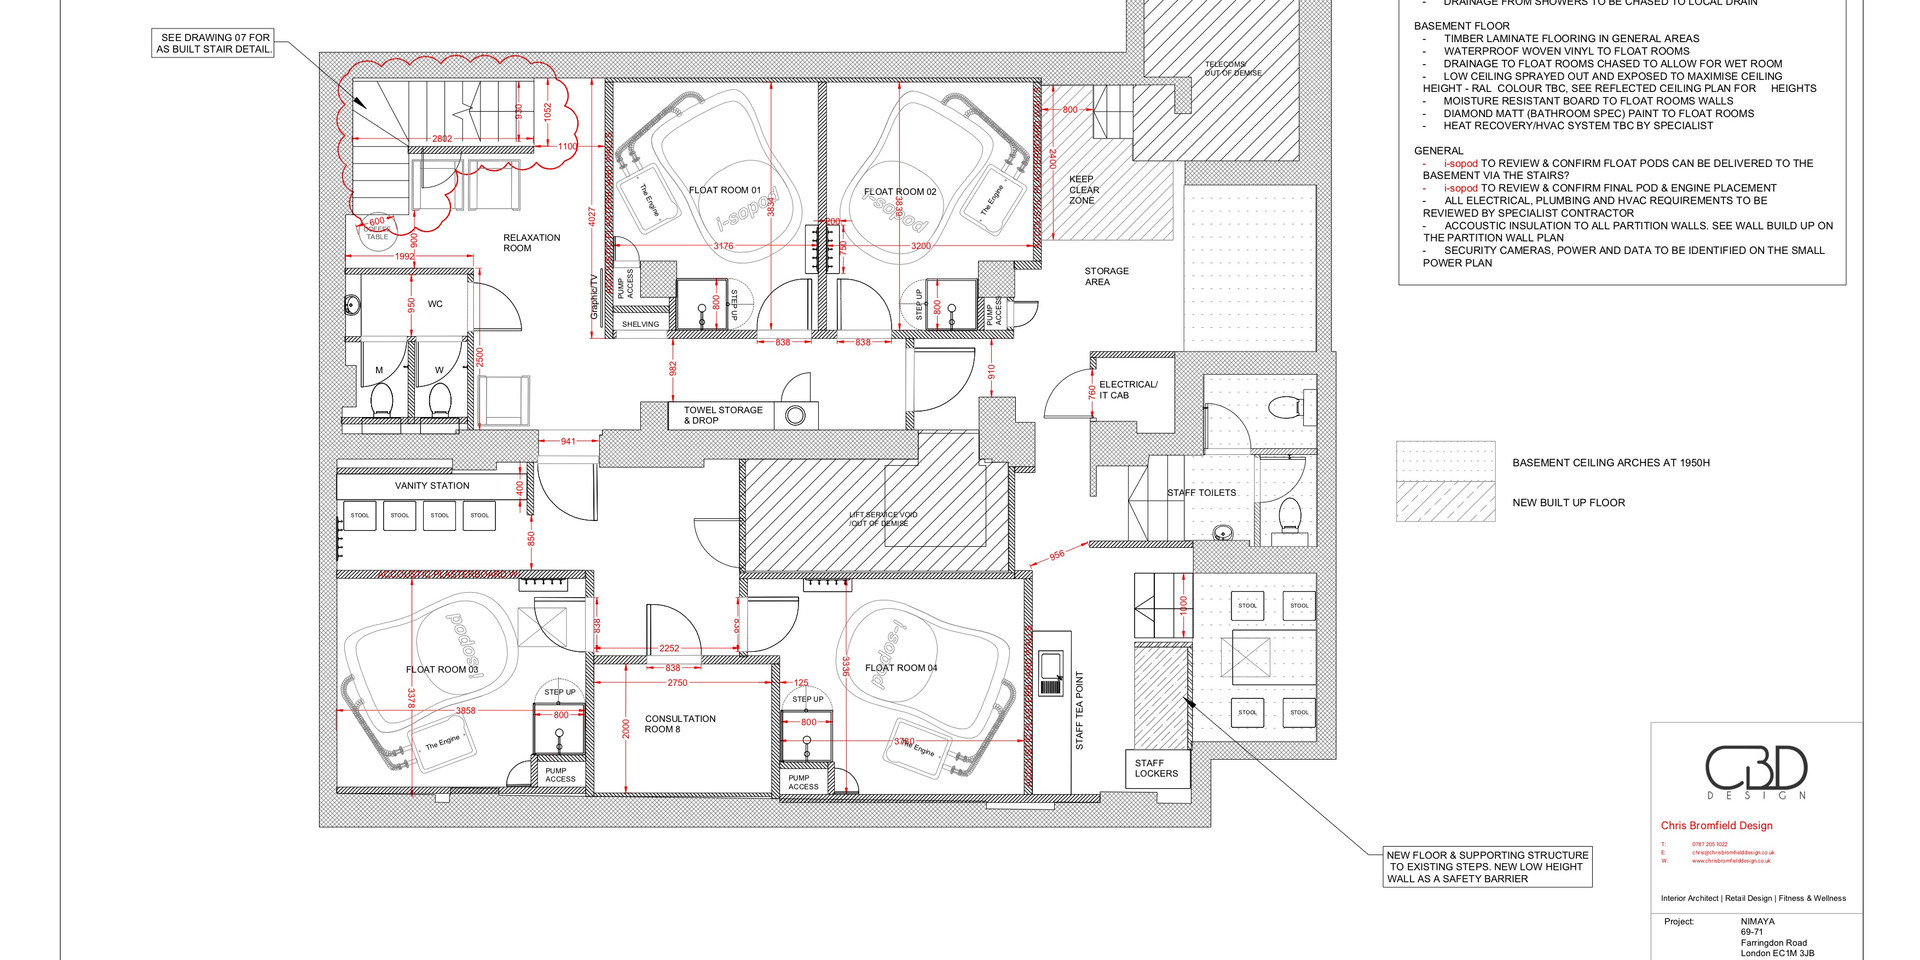 06 Nimaya_Farringdon_Proposed Basement.j